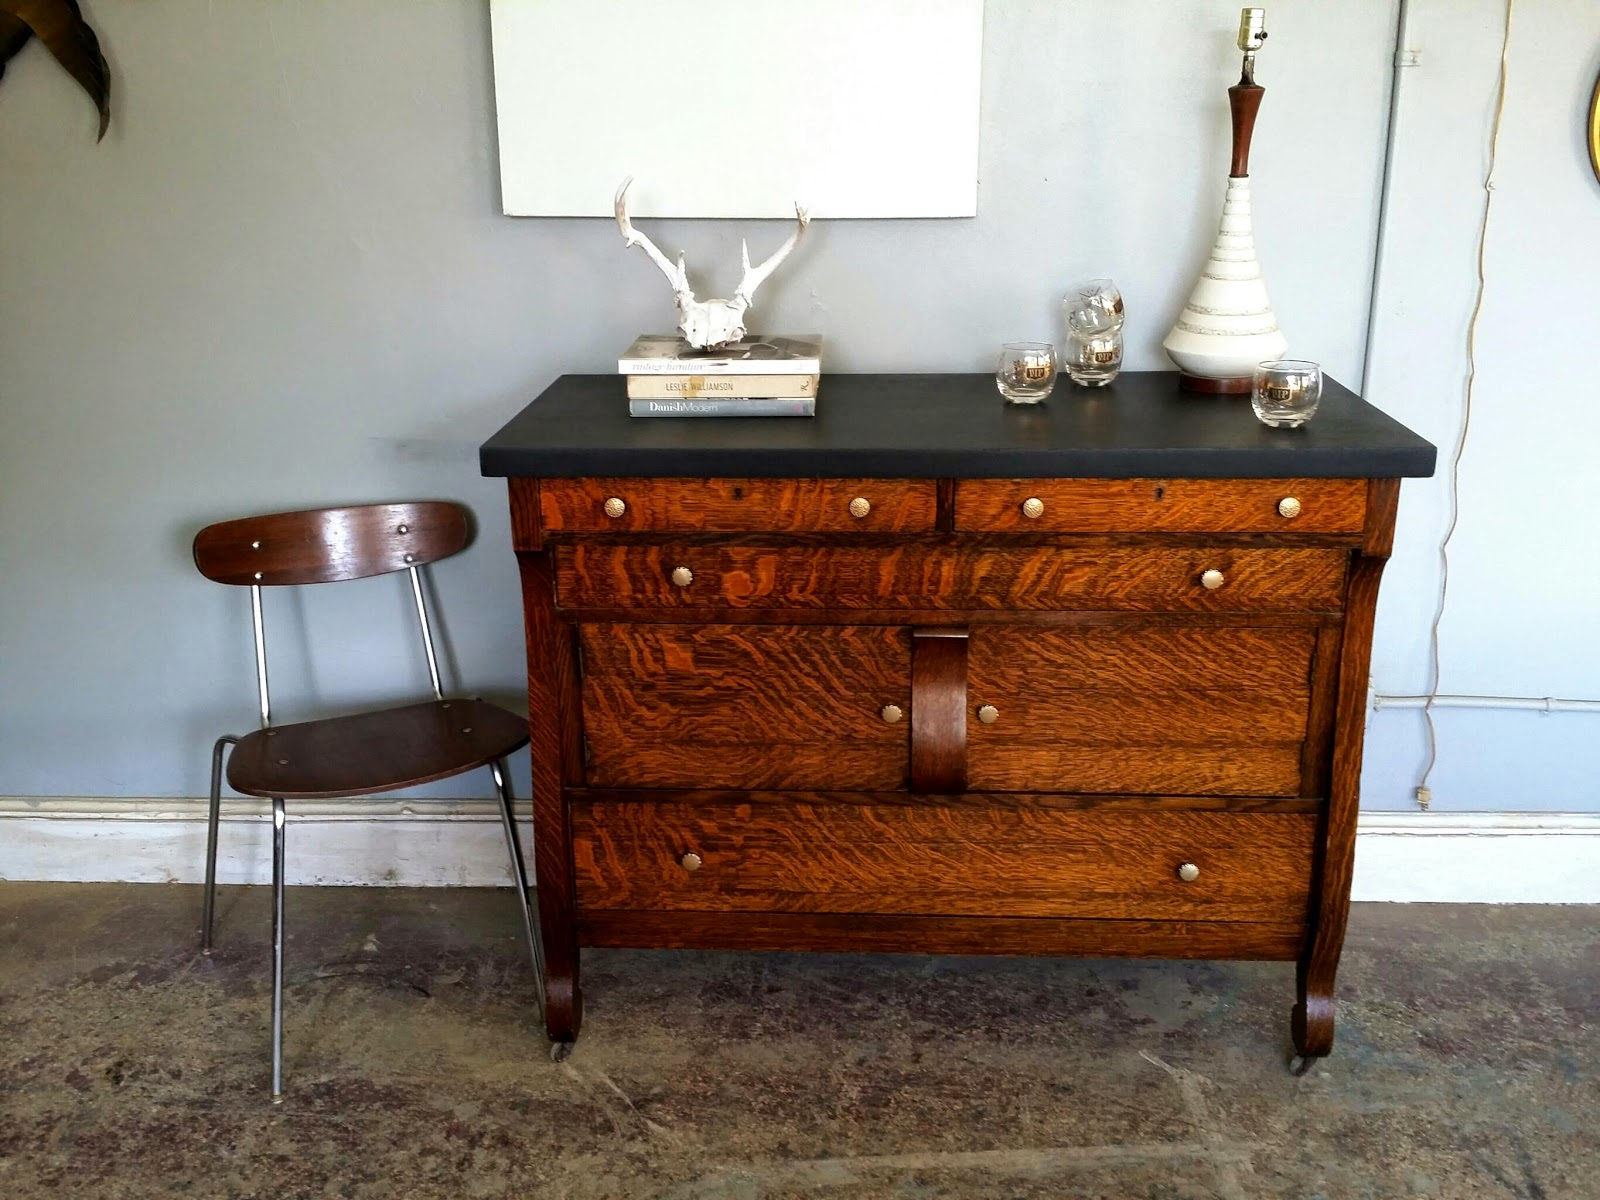 This Would Make An Awesome Bar Buffet Media Console Changing Table Etc. The  Dimensions Are 48w 22d 38.5h. $280. Vintageground@gmail.com